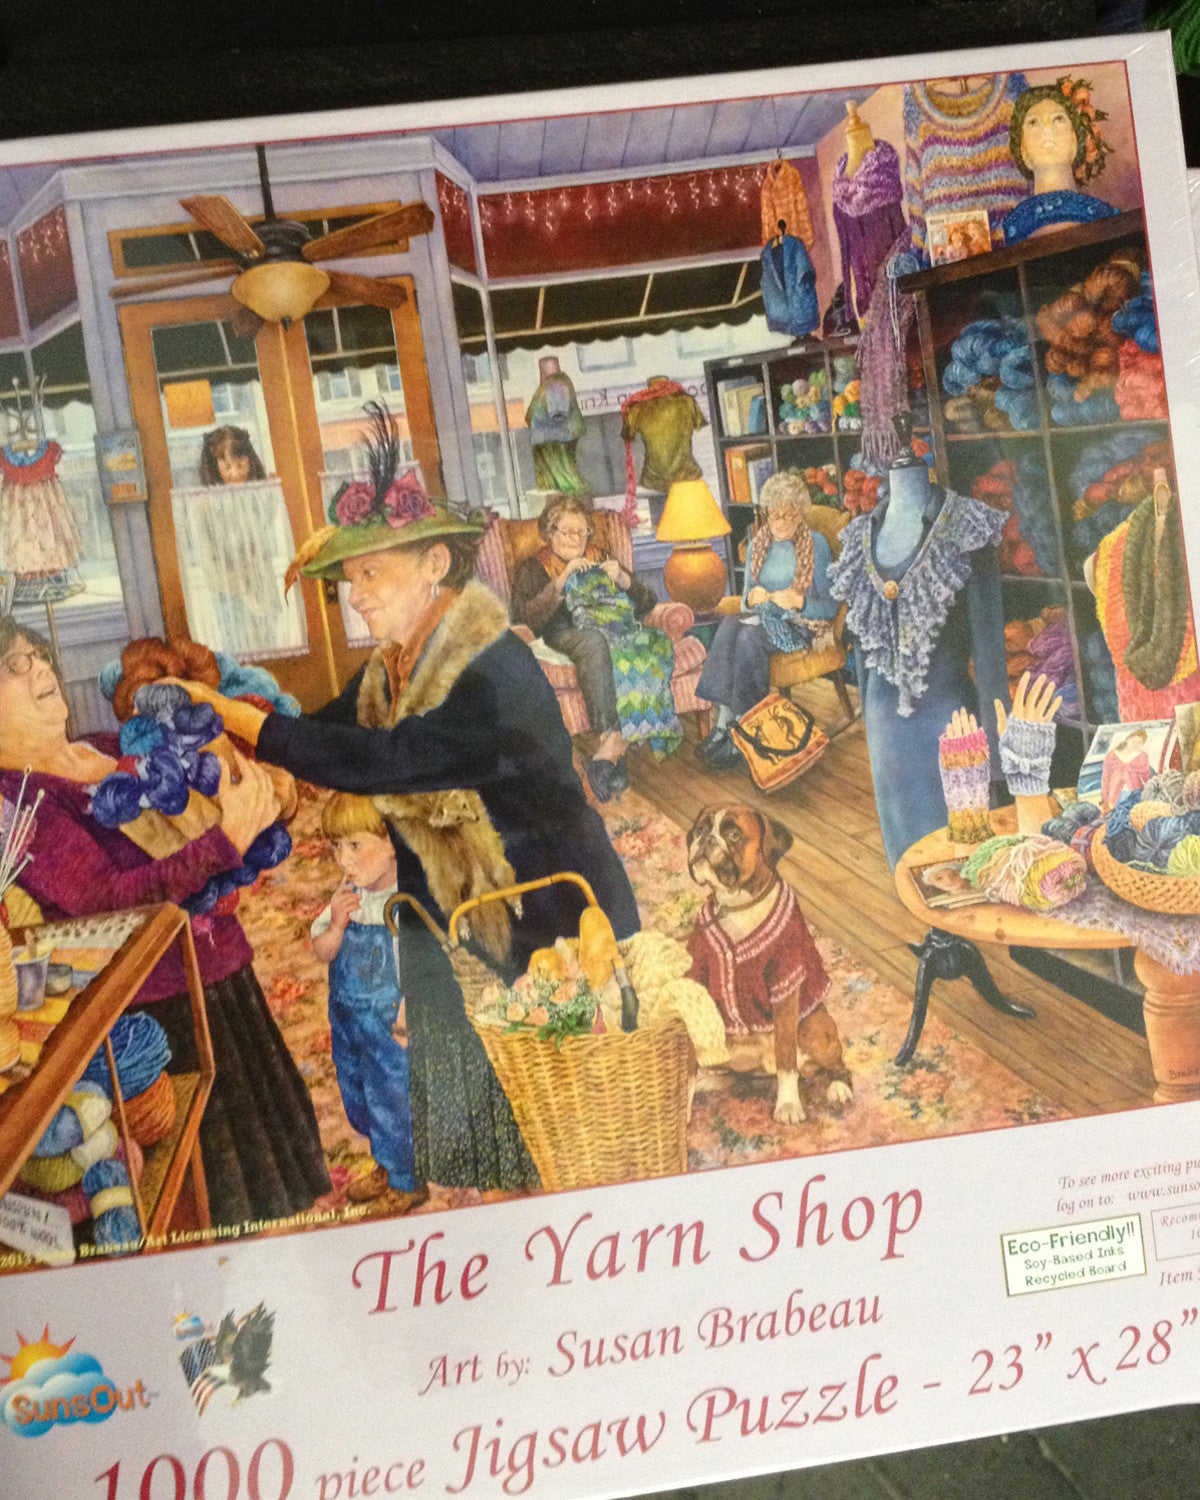 DTK (The Yarn Shop) Jigsaw Puzzle